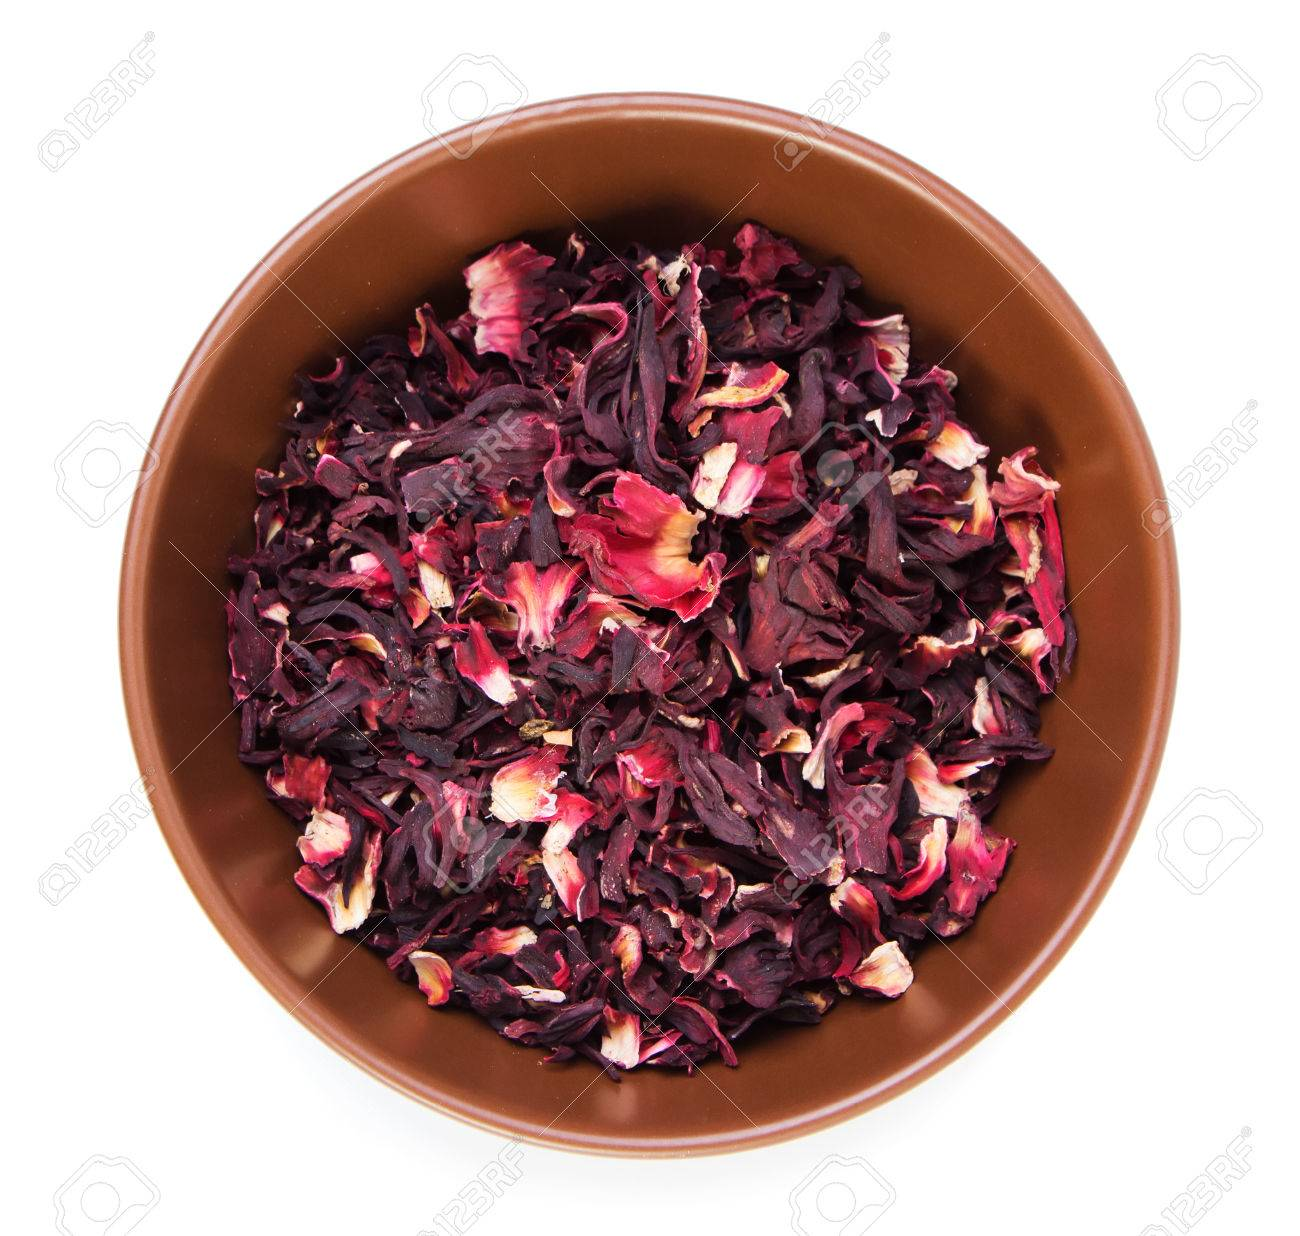 Dry hibiscus tea isolated on white background stock photo picture dry hibiscus tea isolated on white background stock photo 29035983 izmirmasajfo